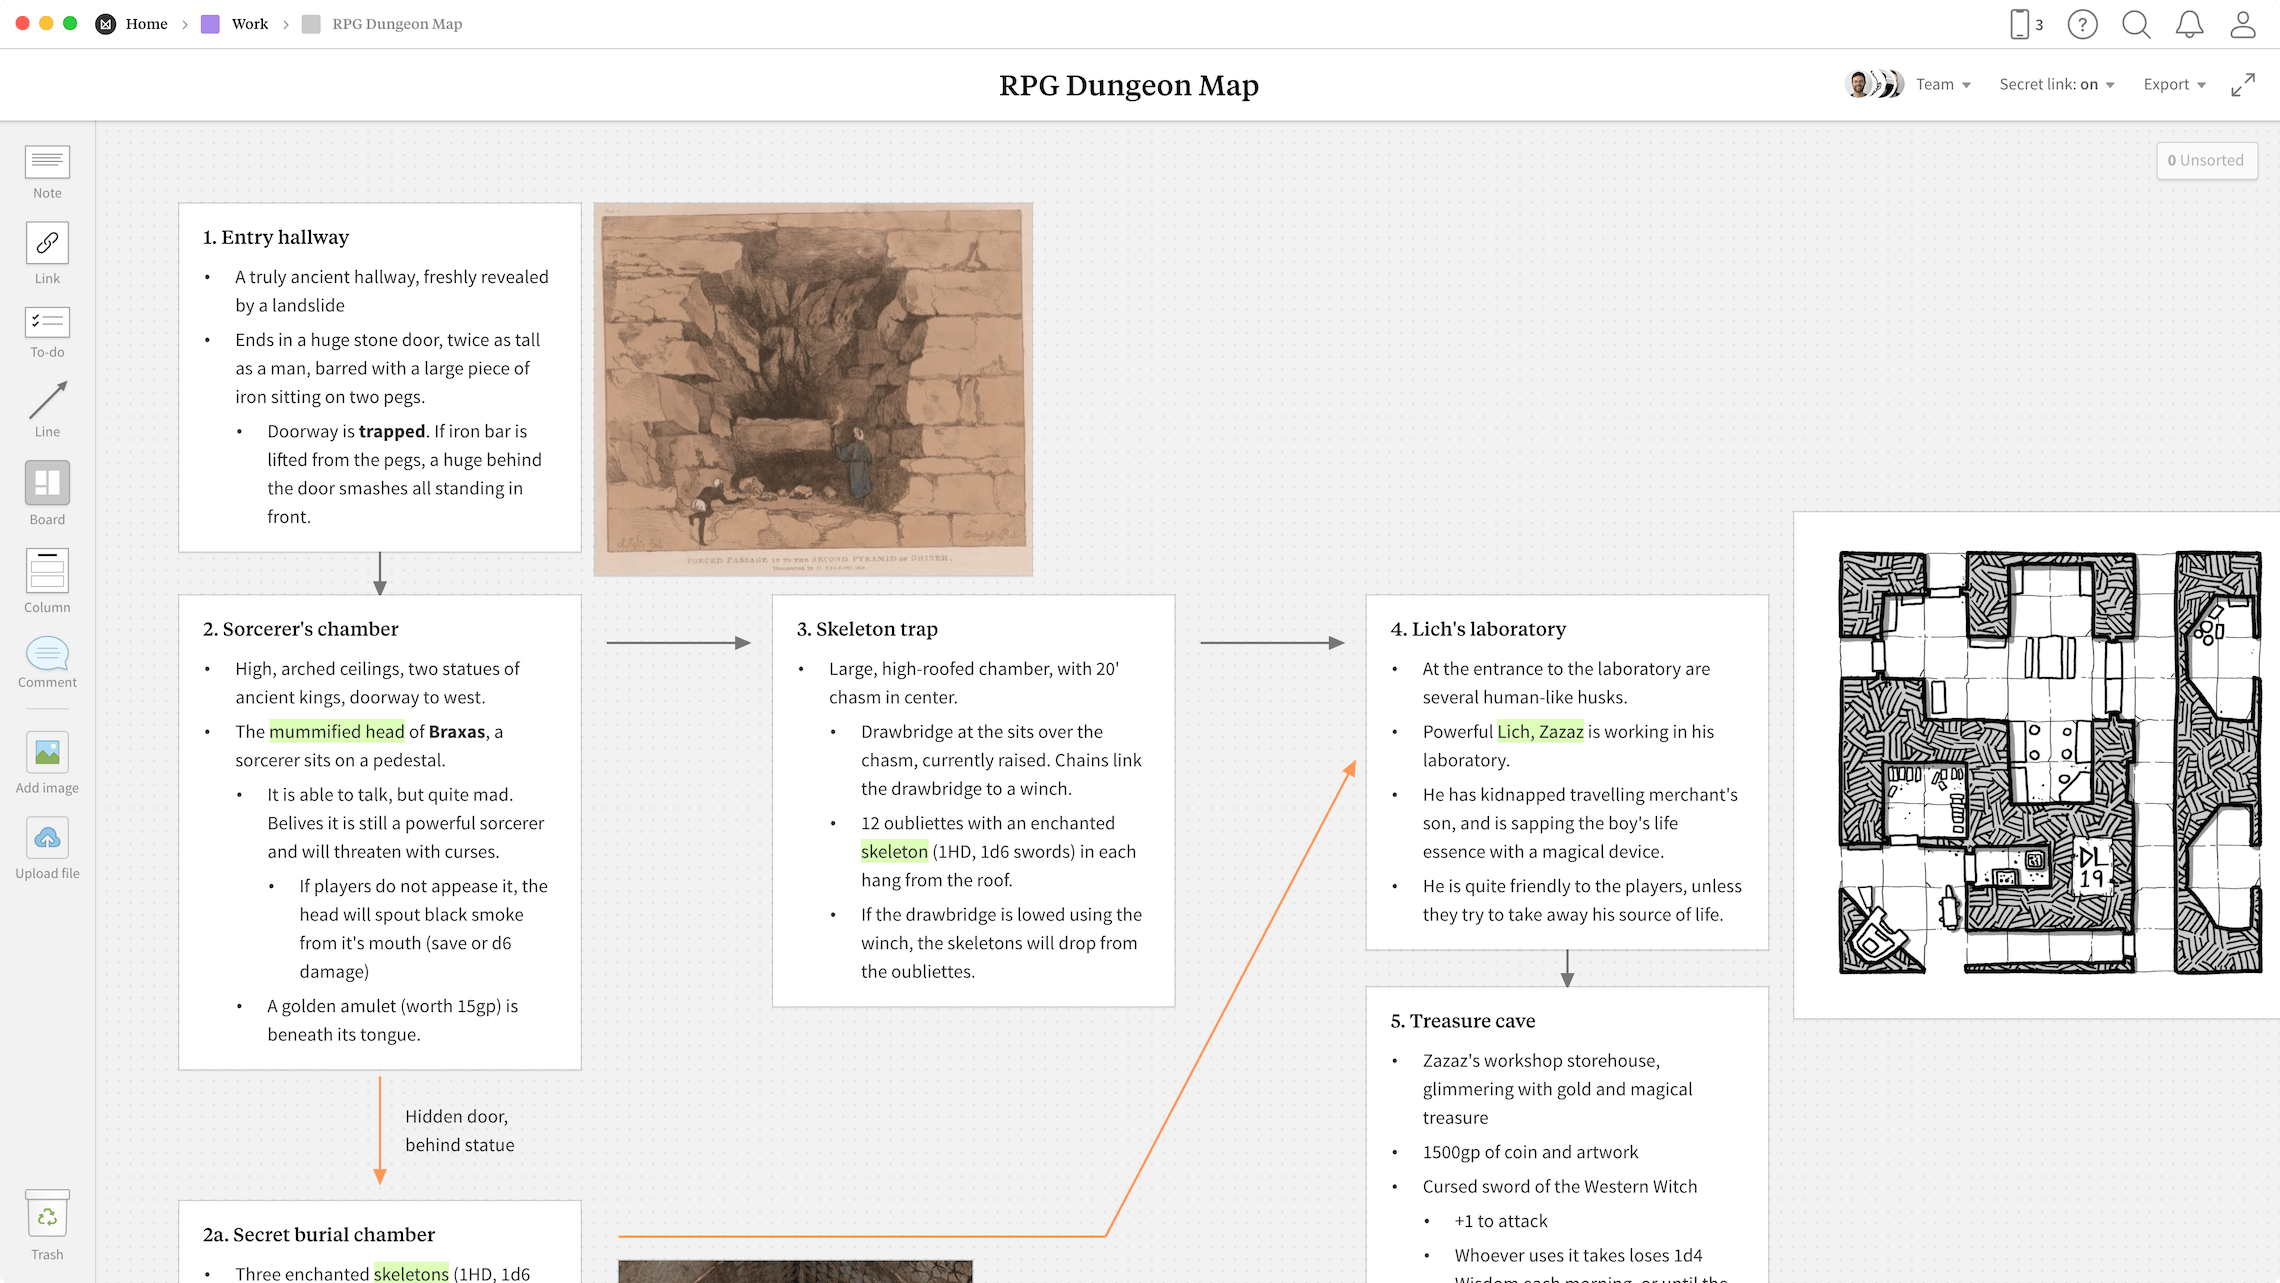 RPG Dungeon Map Template, within the Milanote app